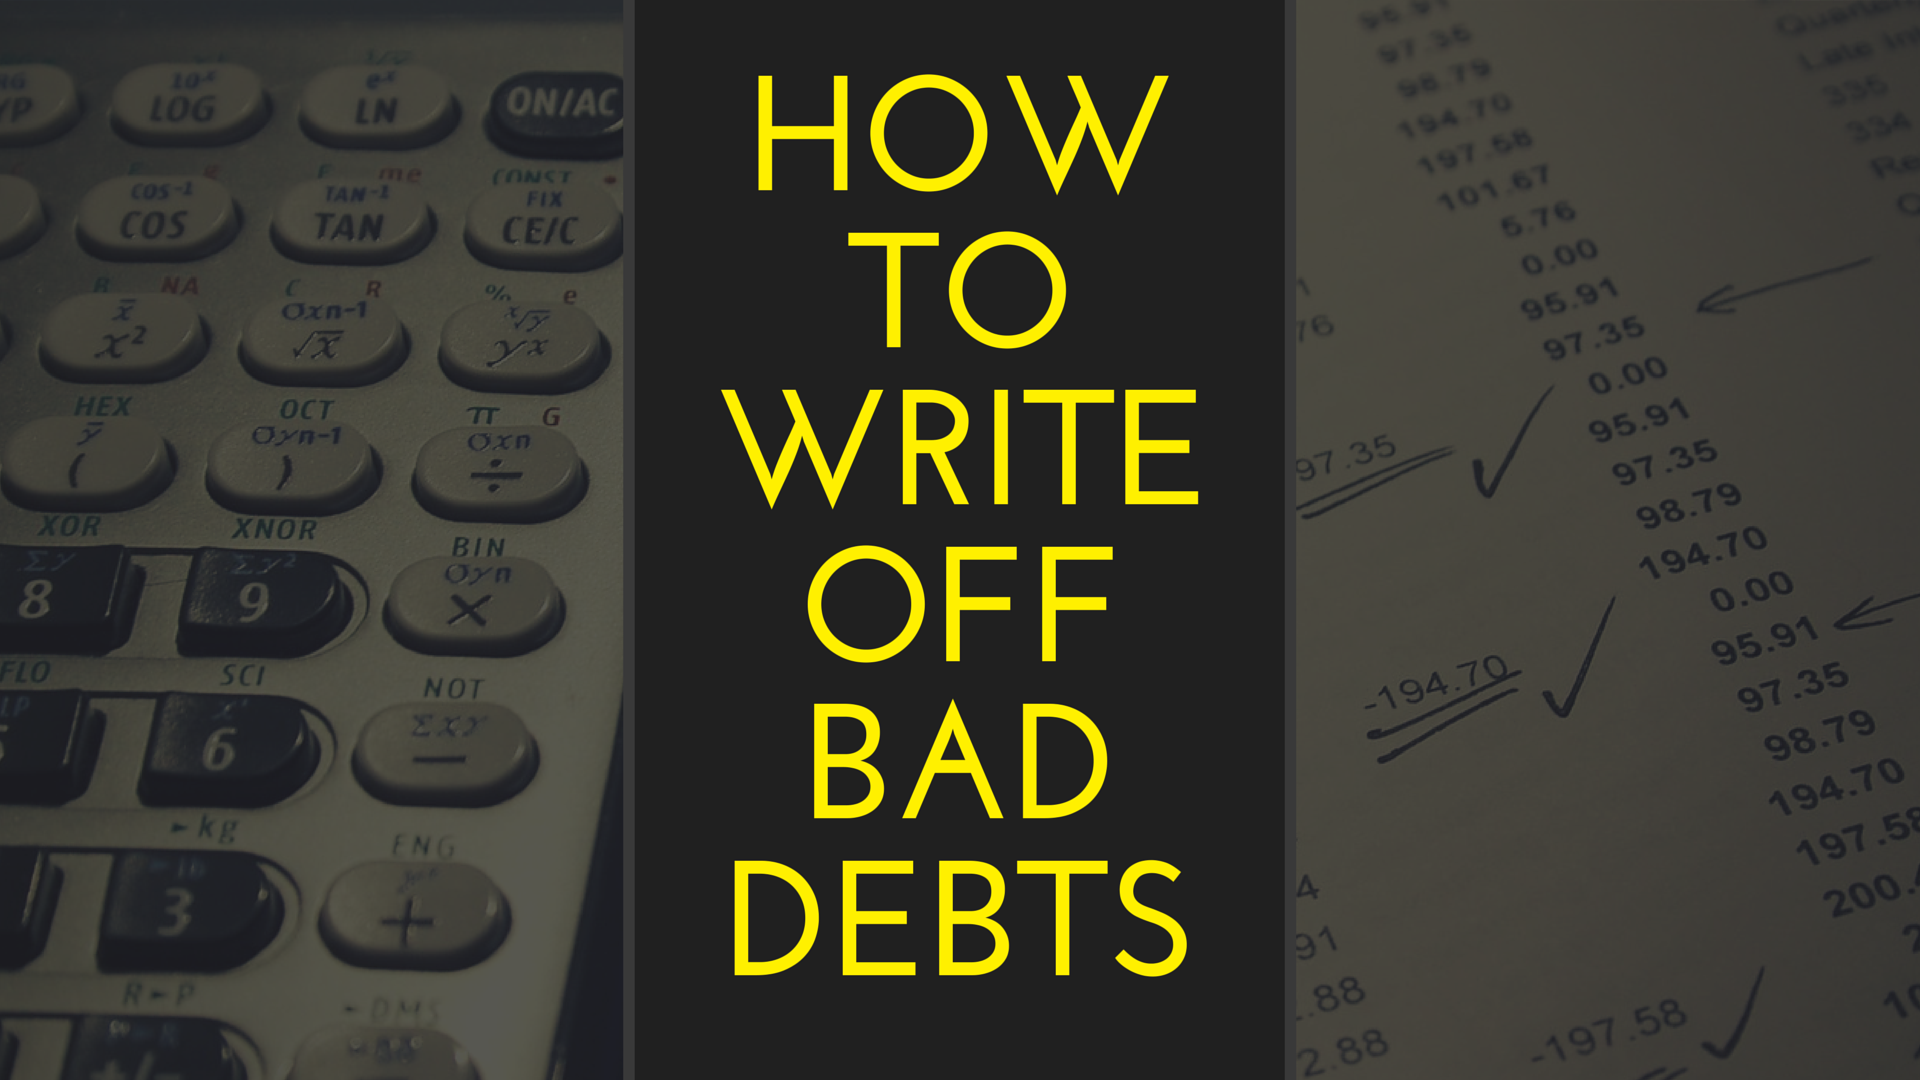 bad debt write off Writing off your business's bad debt is not to be taken lightly learn just how negatively it affects your cash flow and how to avoid it.